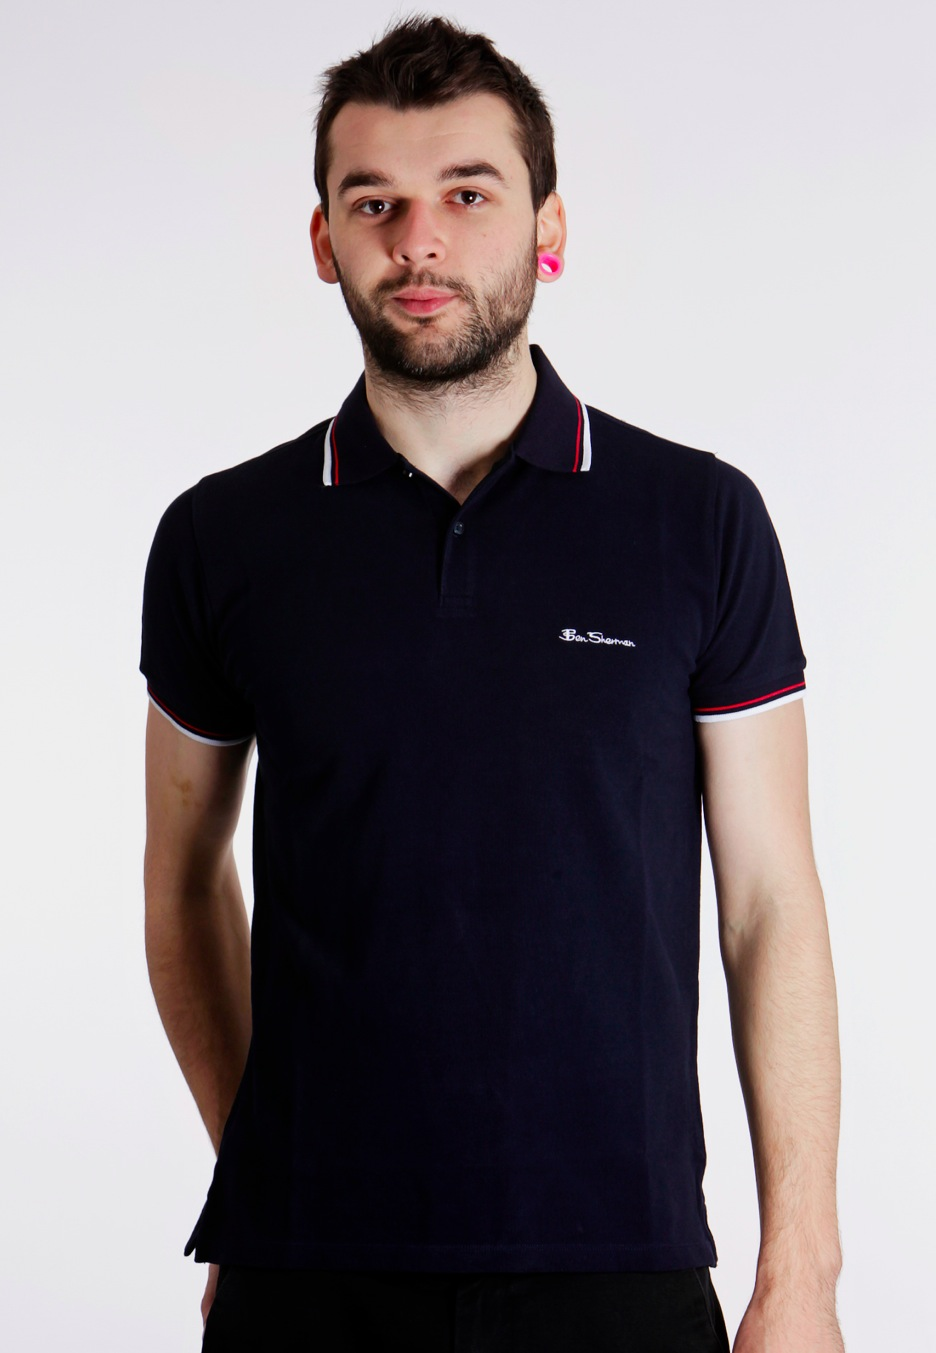 ben sherman romford tipped collar classic navy red white polo boys worldwide. Black Bedroom Furniture Sets. Home Design Ideas